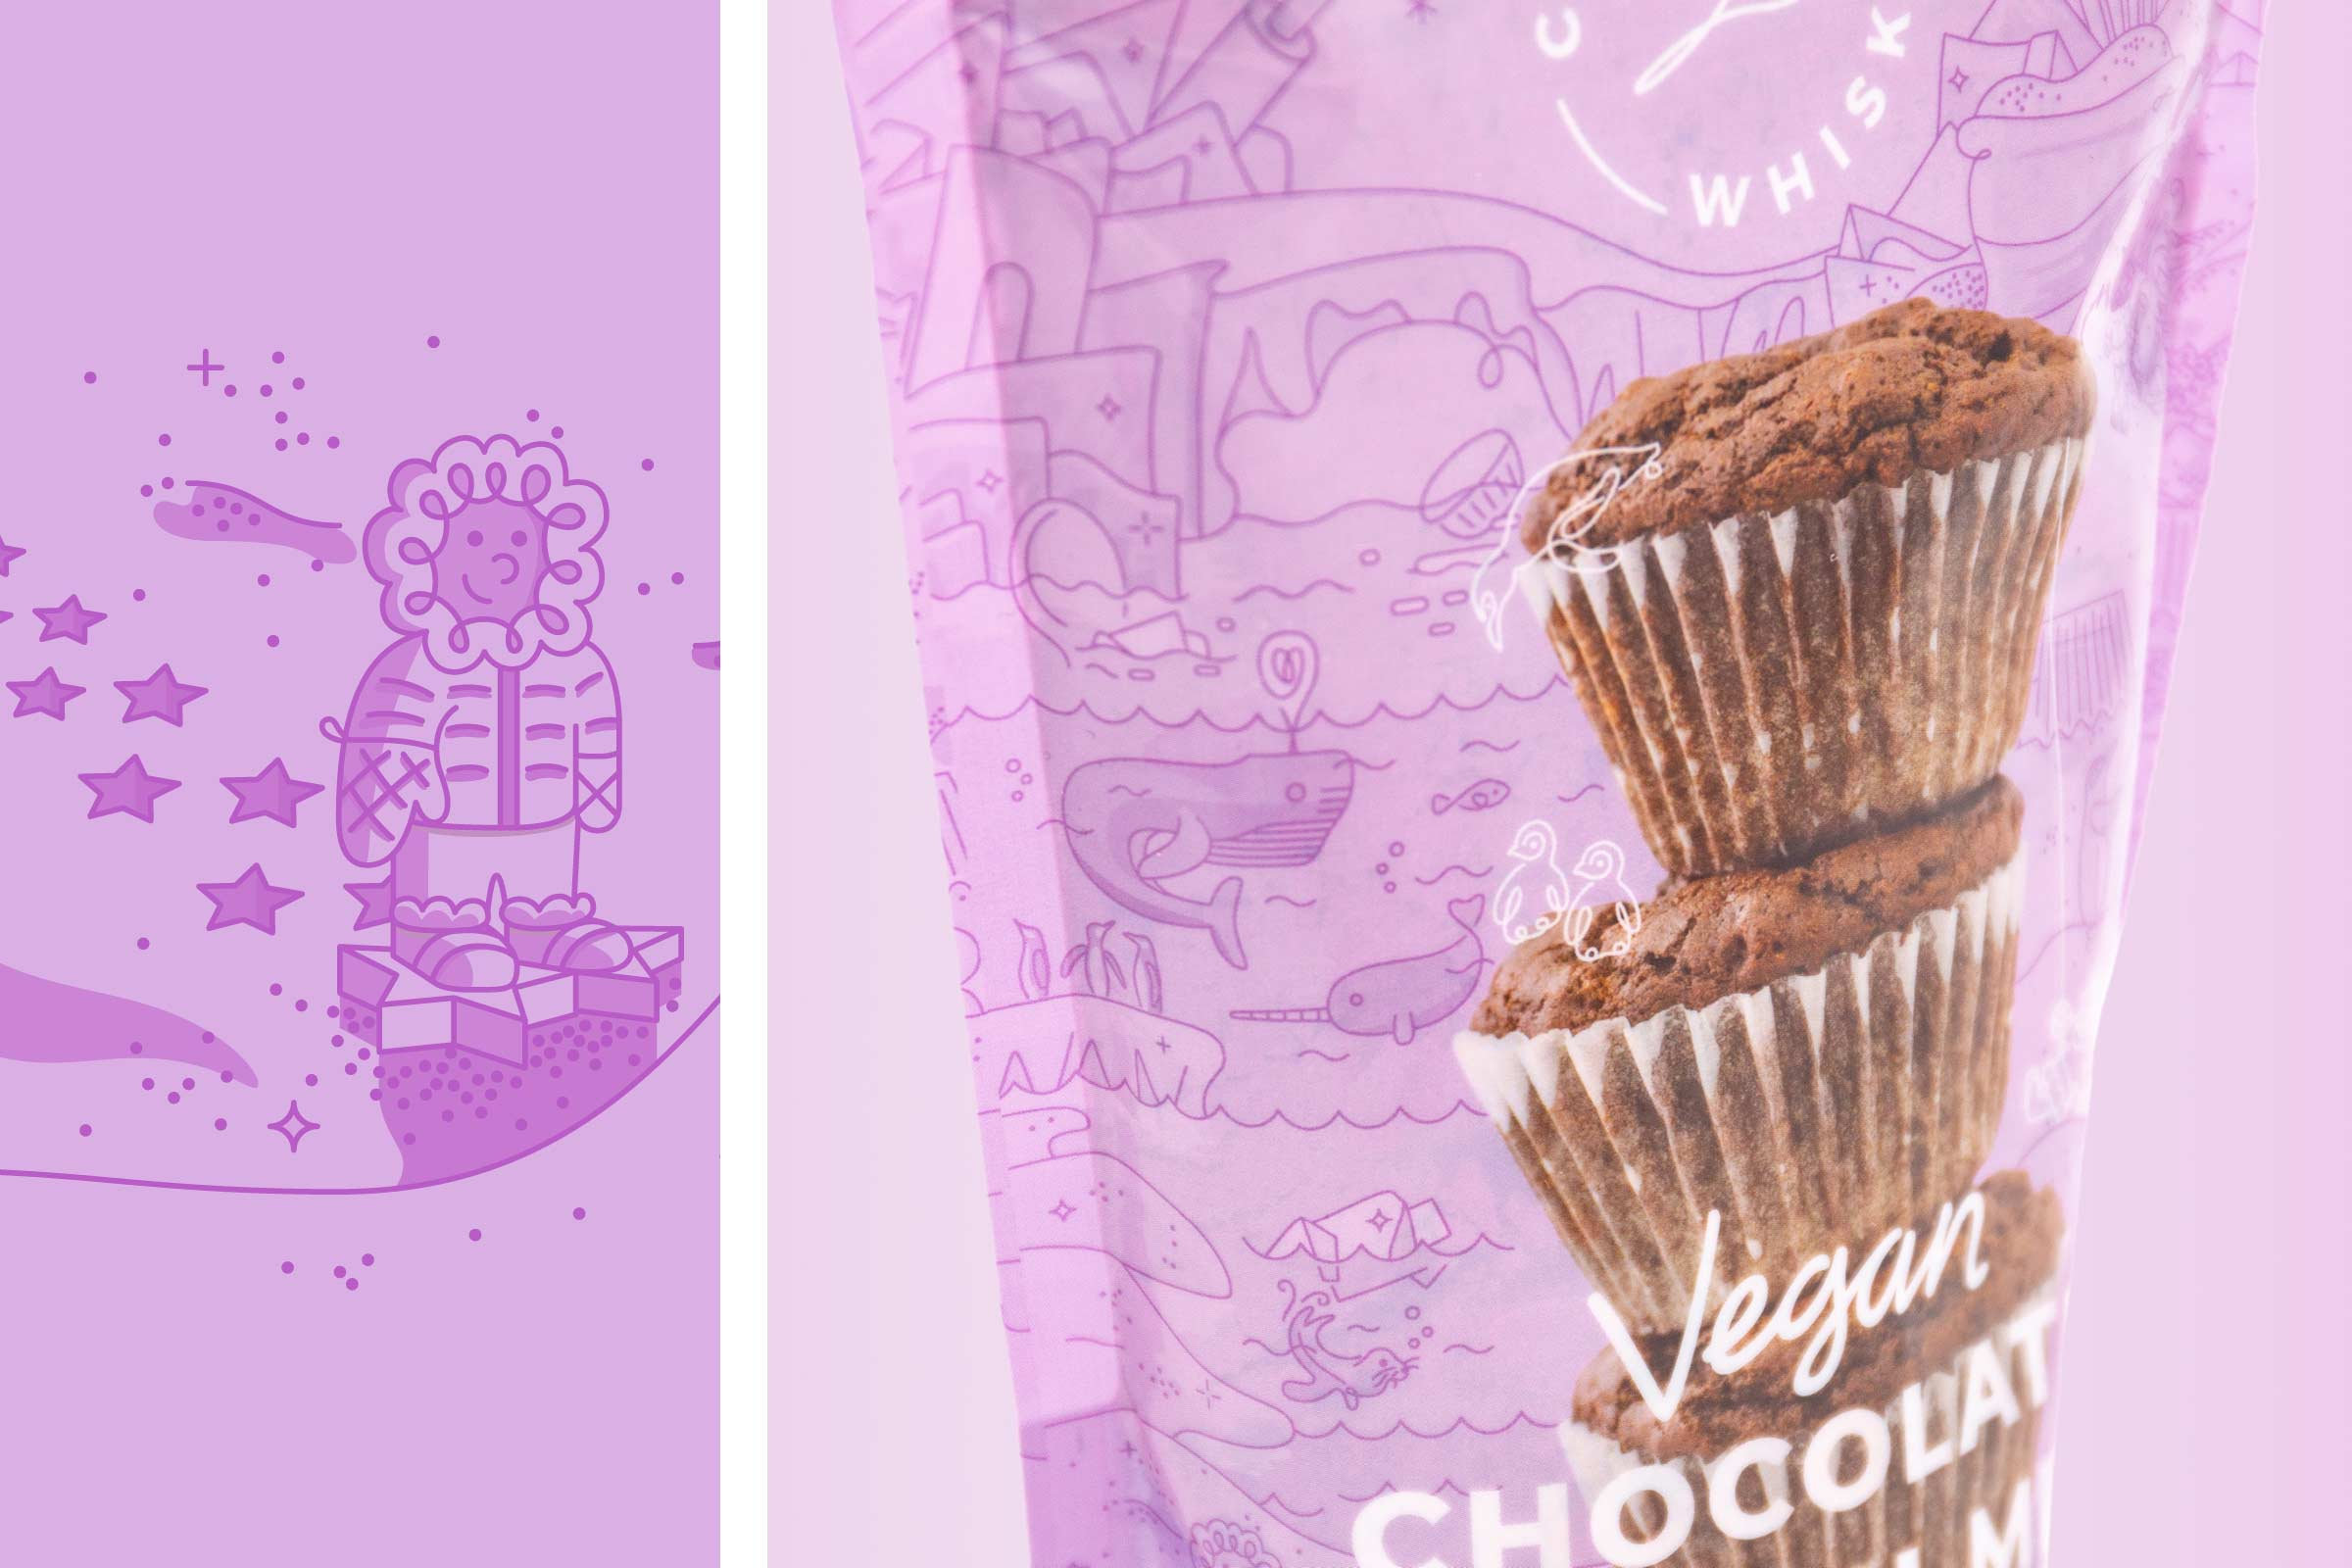 coconut whisk chocolate muffin packaging detail